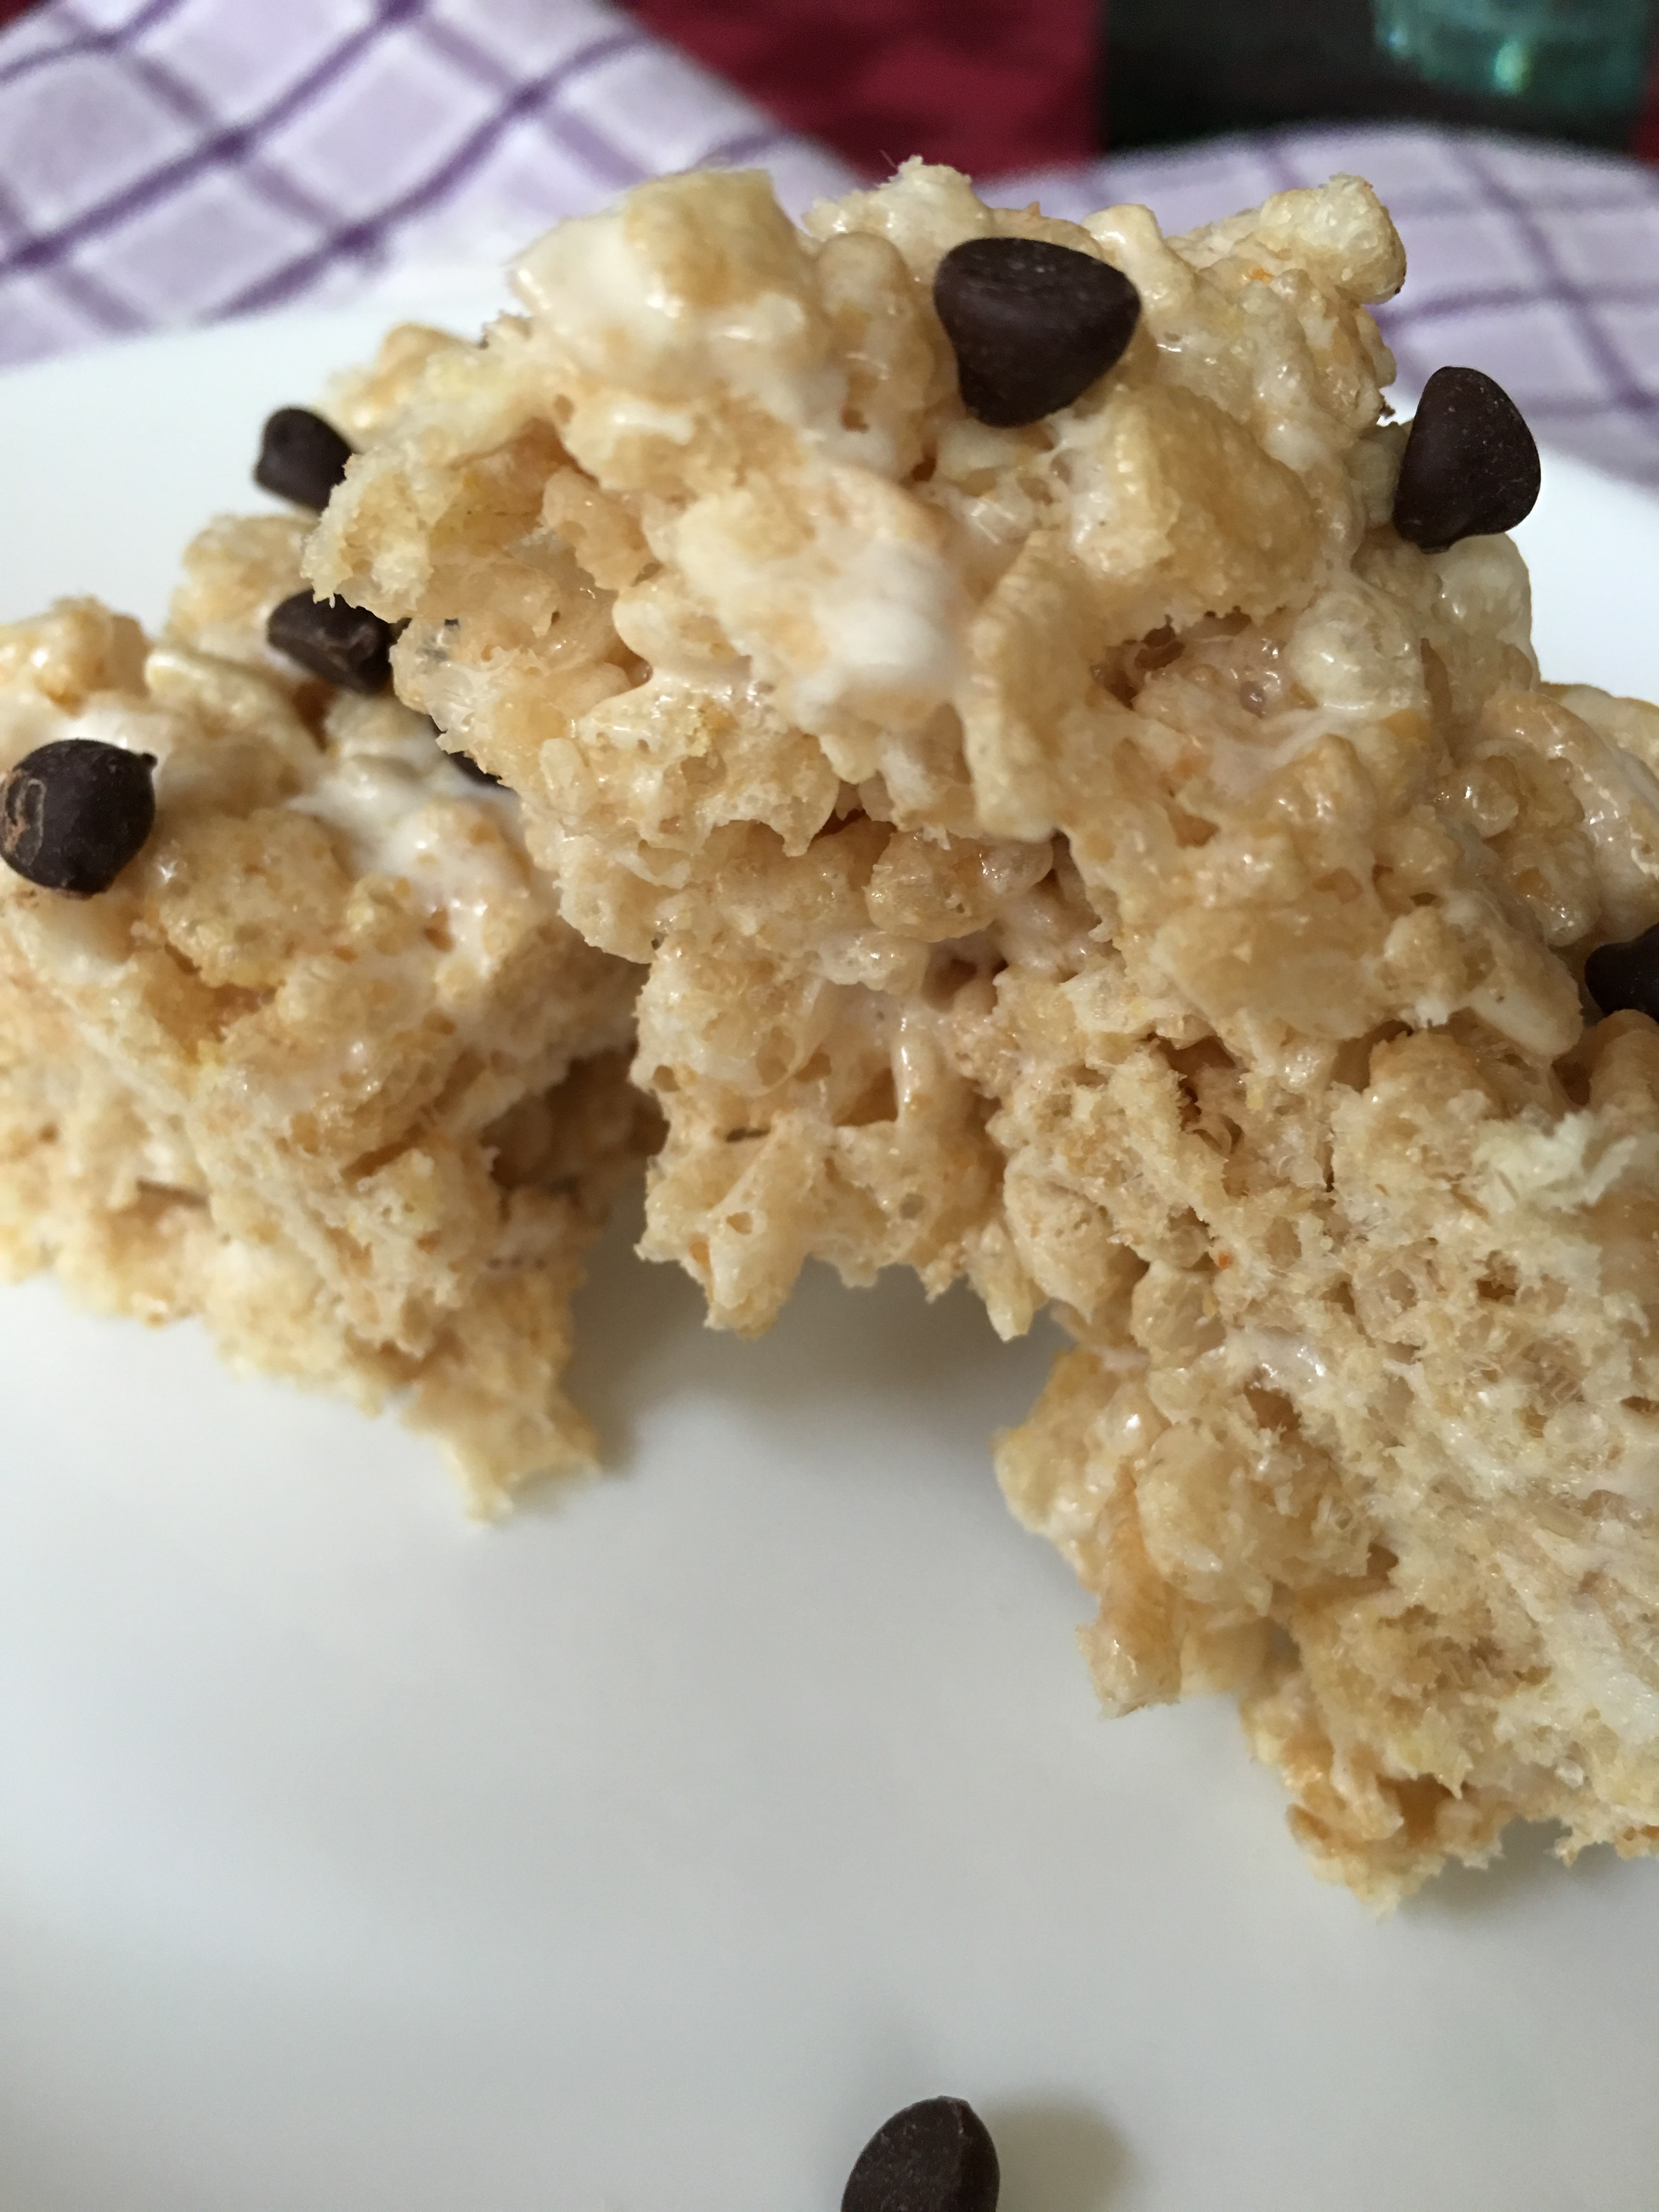 Healthy gluten free krispie treat safe for fructose malabsorption